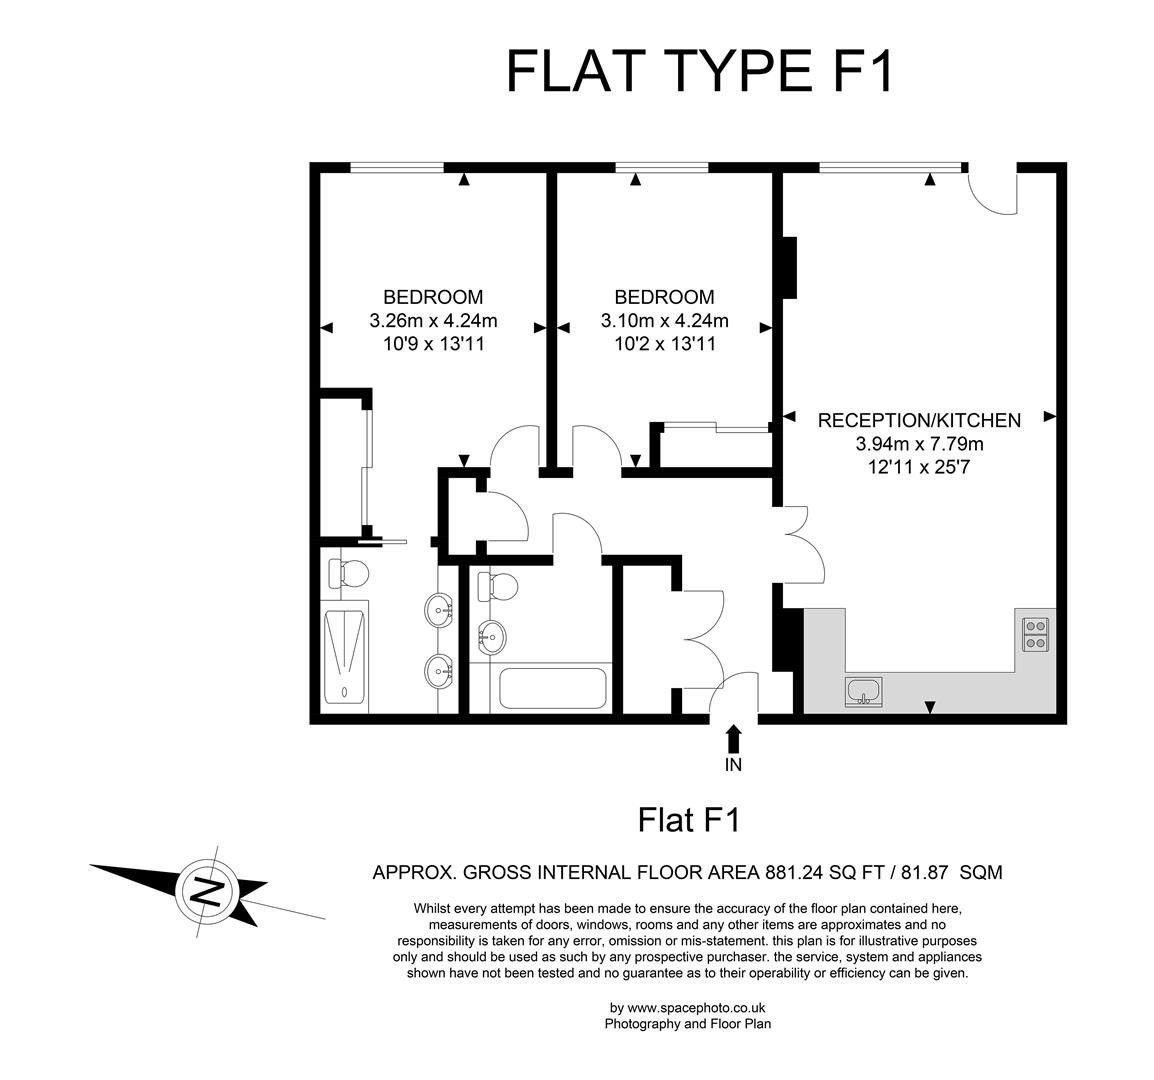 black sea estates luxury london real estate floor plans black sea estates luxury london real estate